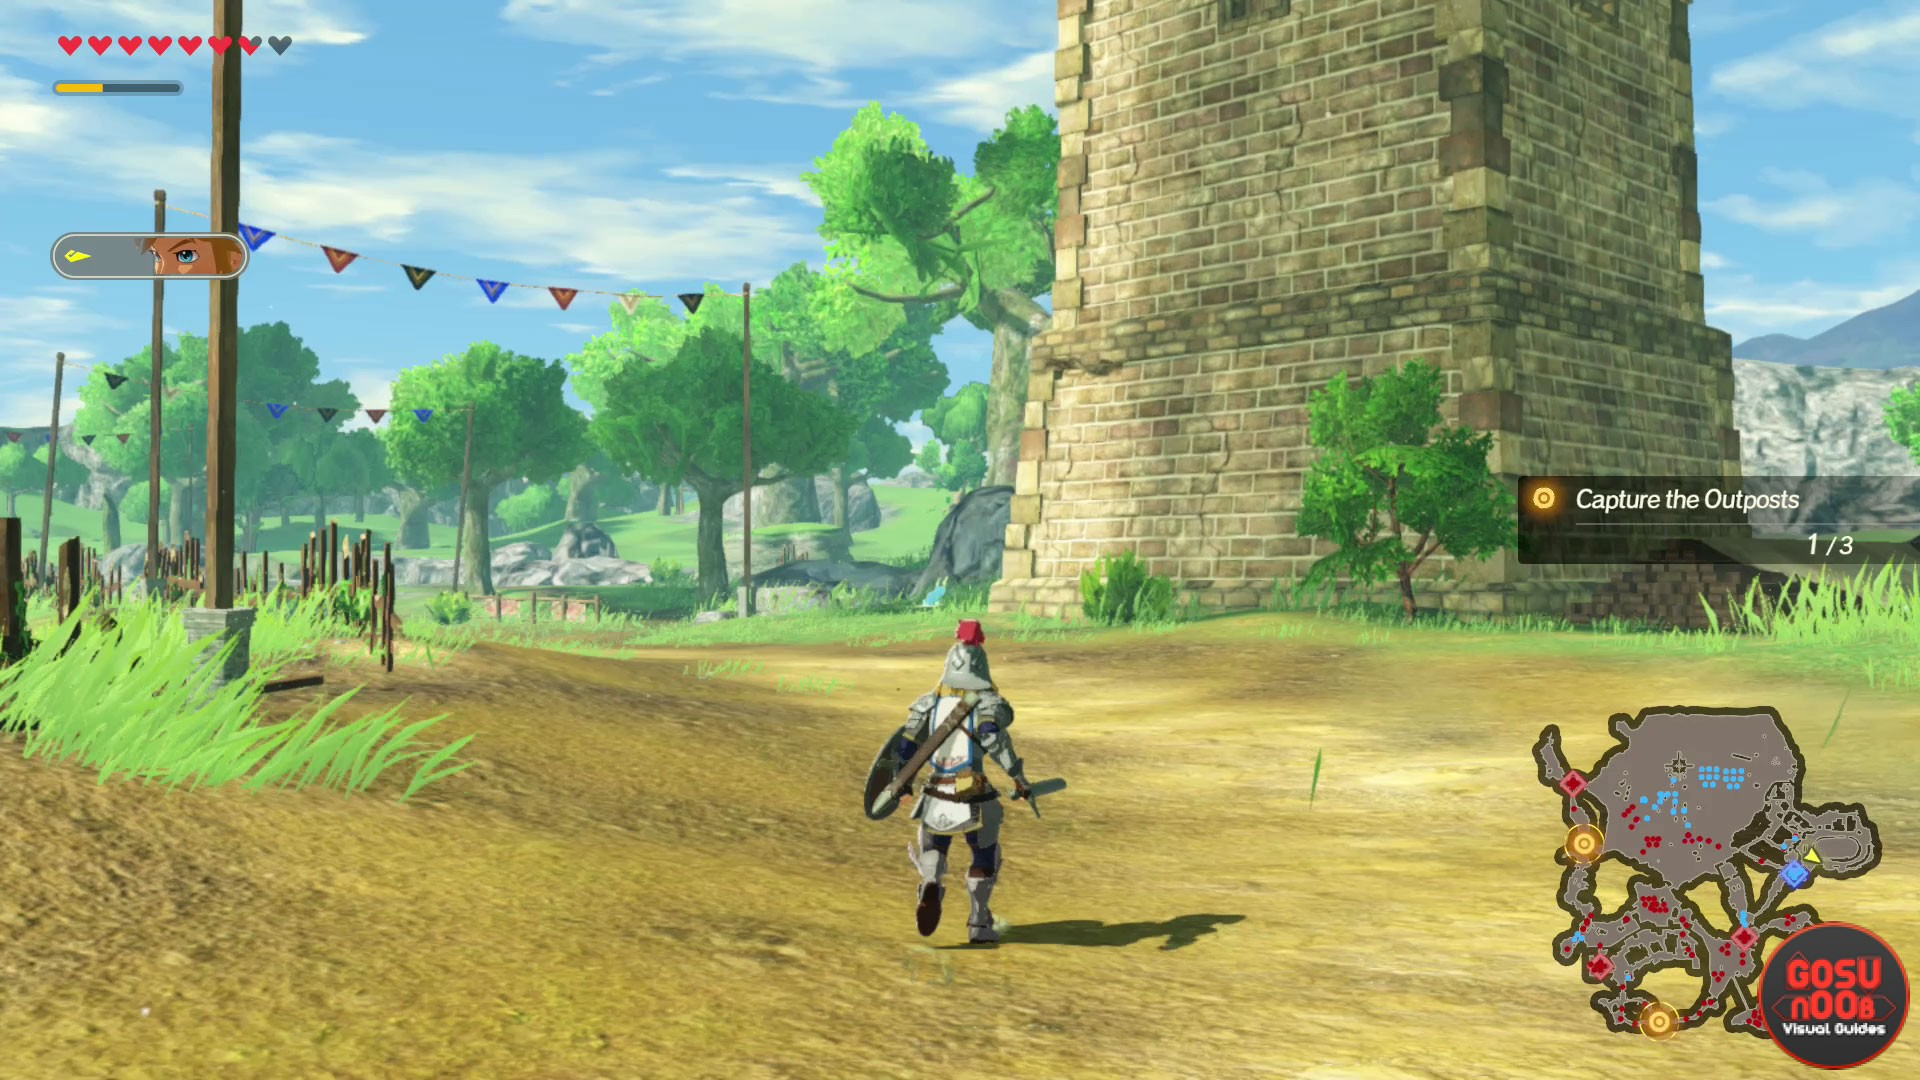 Blupee Location In Hyrule Warriors Age Of Calamity